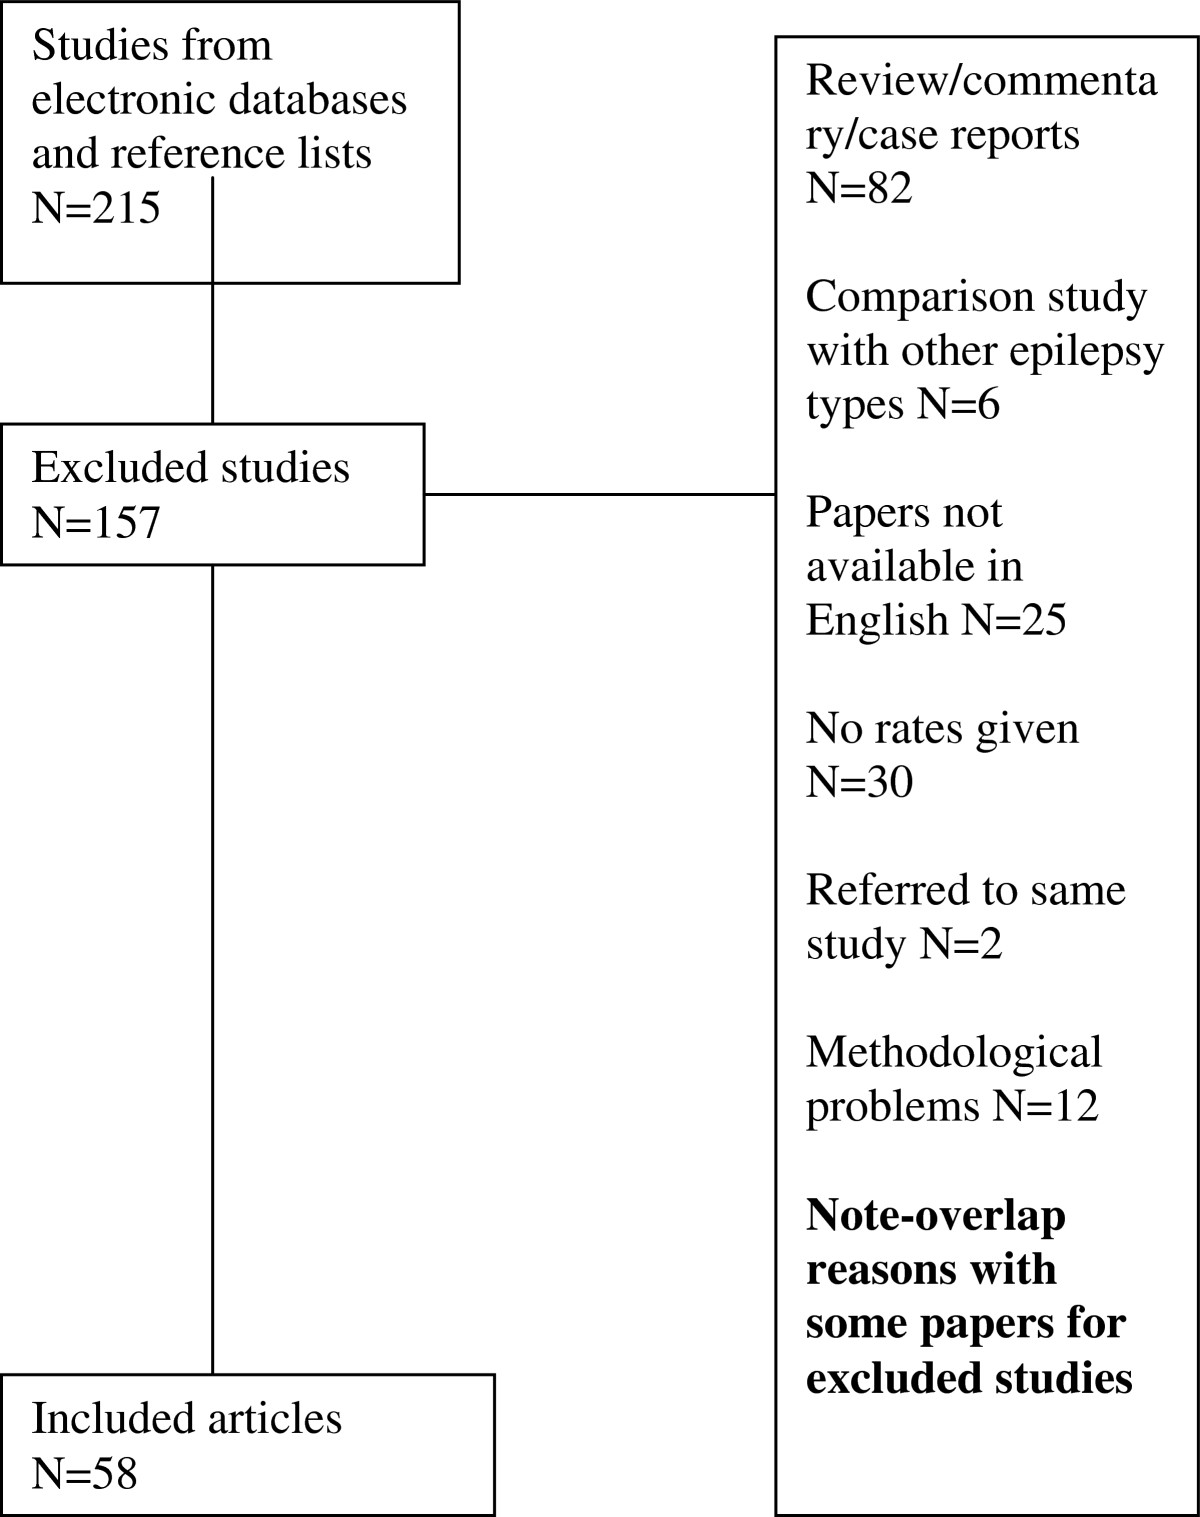 https://static-content.springer.com/image/art%3A10.1186%2F1471-244X-14-75/MediaObjects/12888_2013_Article_1841_Fig1_HTML.jpg